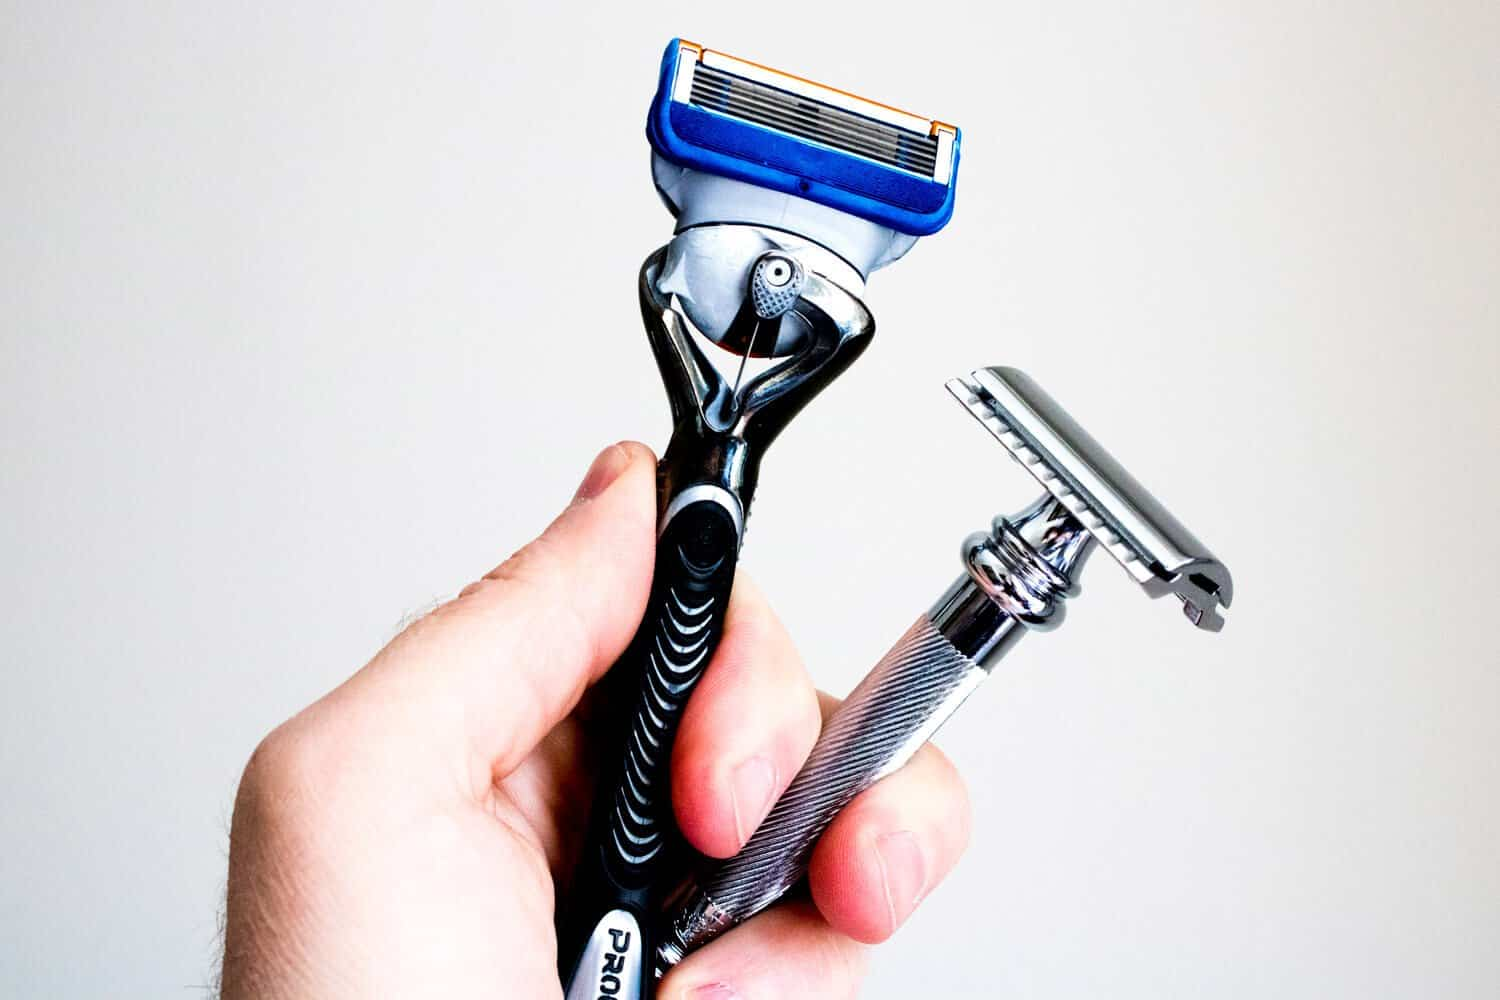 safety razor vs cartridge razor